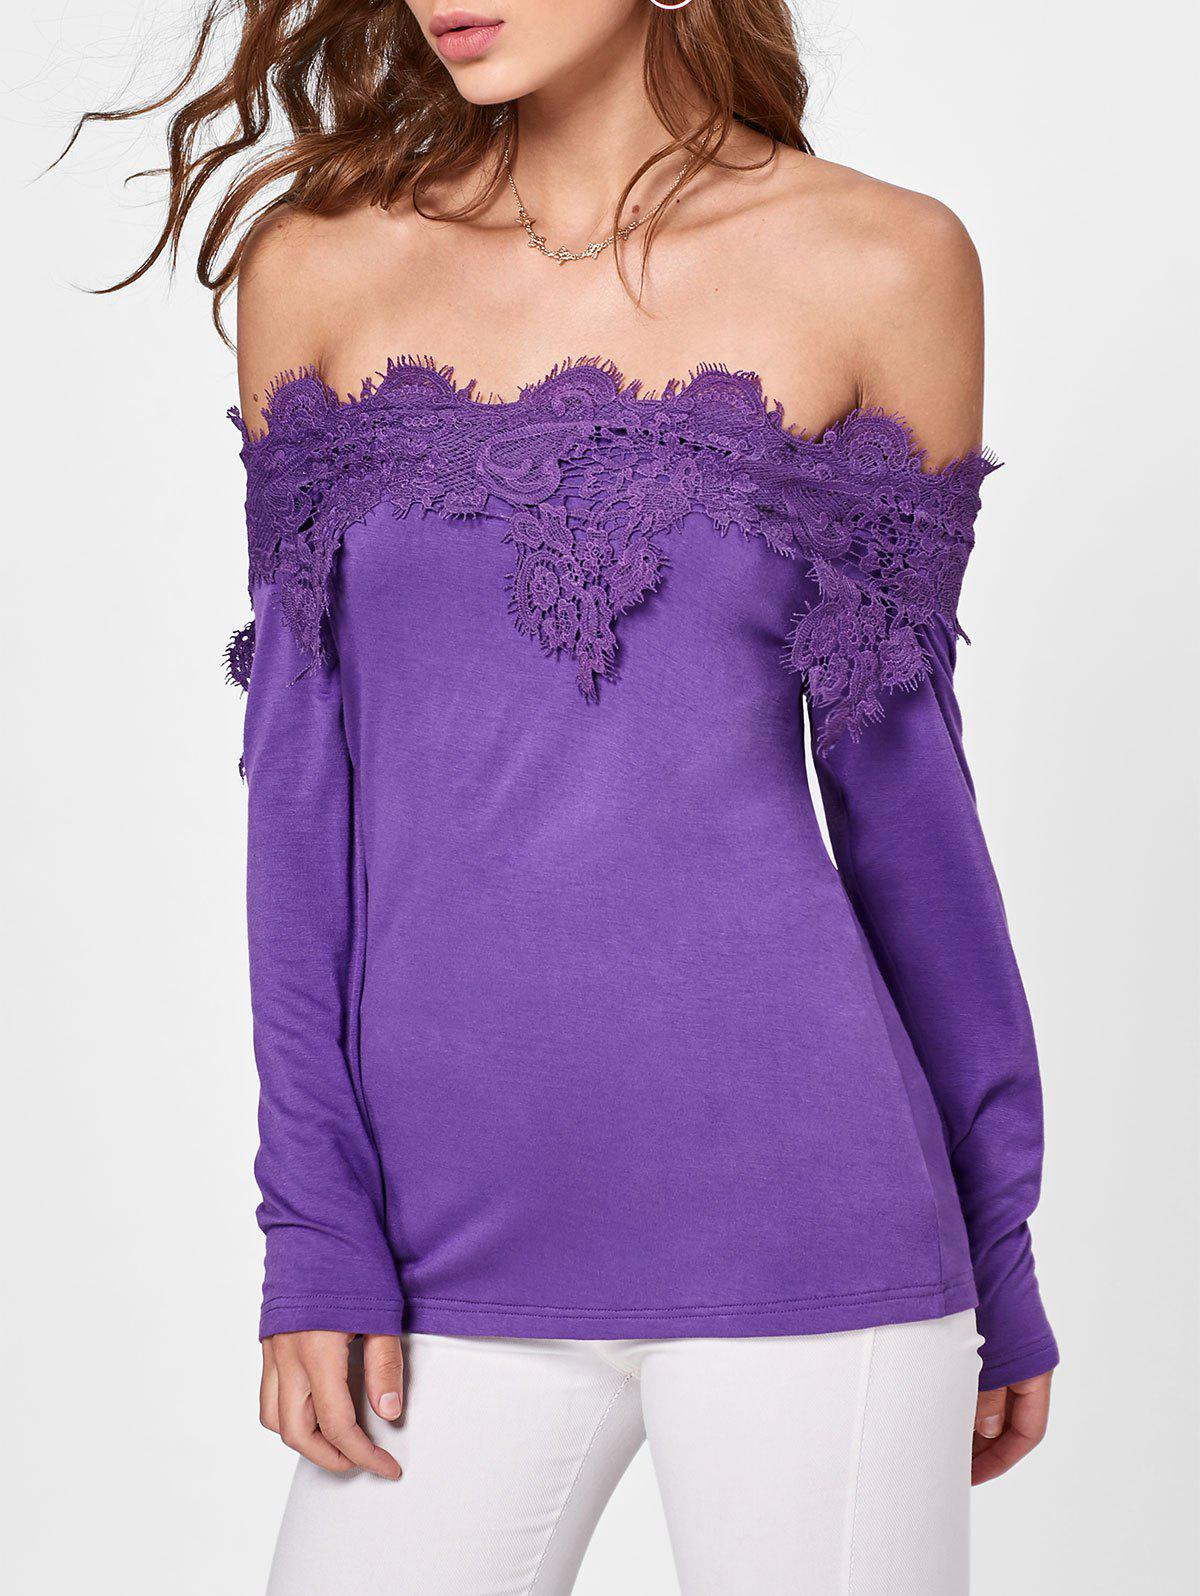 Long Sleeve Off The Shoulder Lace Insert T-shirt - PURPLE 2XL